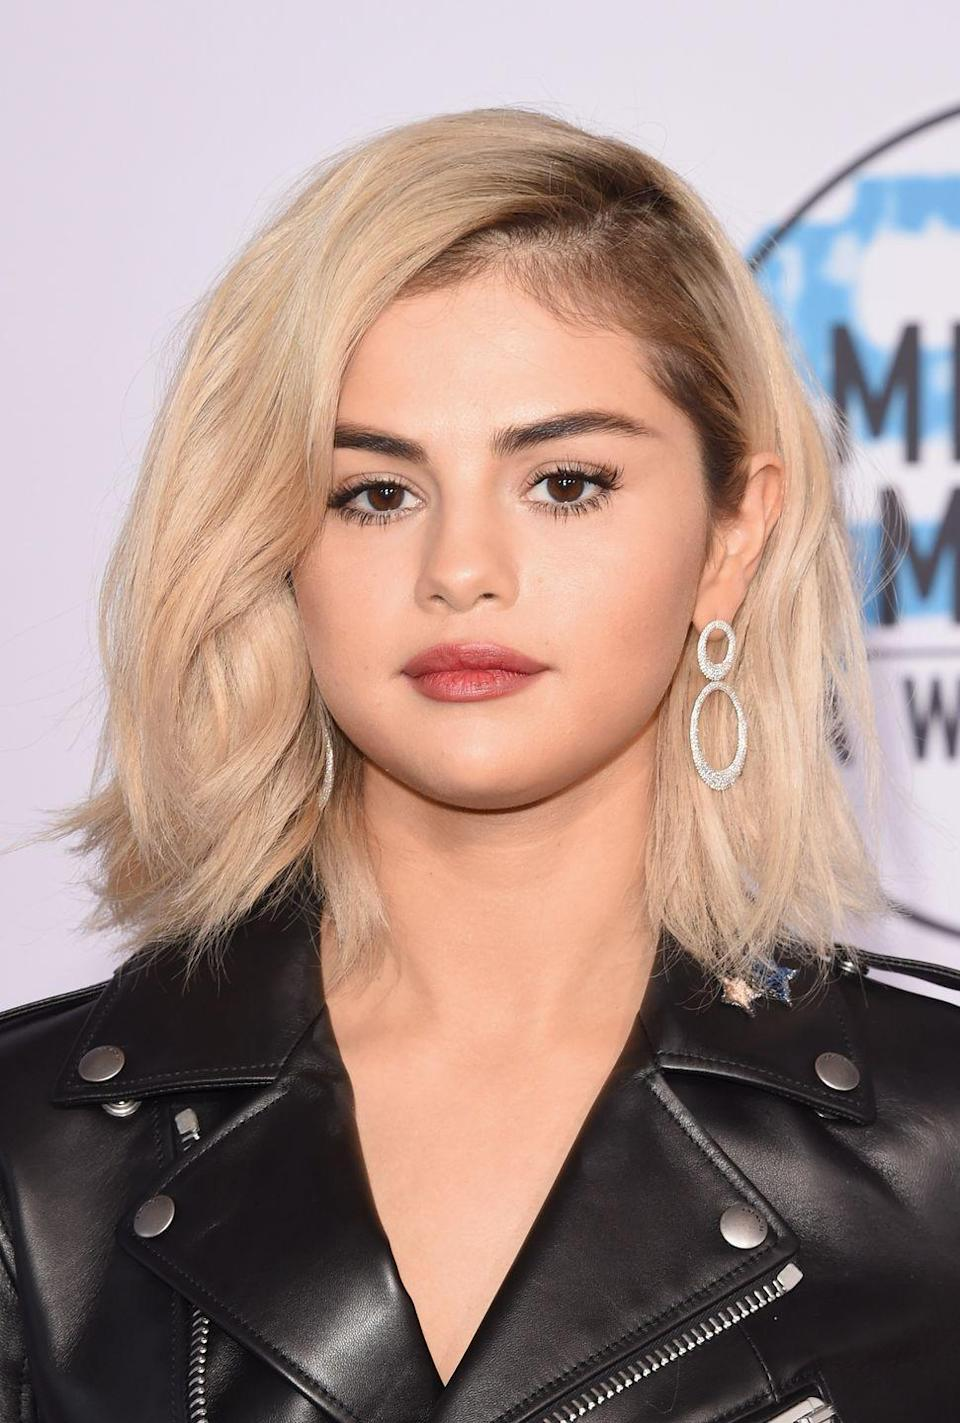 "<p>""I've discovered that anxiety, panic attacks and depression can be side effects of lupus, which can present their own challenges,"" she told <a href=""http://people.com/celebrity/selena-gomez-taking-a-break-after-lupus-complications/"" rel=""nofollow noopener"" target=""_blank"" data-ylk=""slk:People"" class=""link rapid-noclick-resp"">People</a>. ""I want to be proactive and focus on maintaining my health and happiness and have decided that the best way forward is to take some time off […] I know I am not alone by sharing this, I hope others will be encouraged to address their own issues.""</p>"